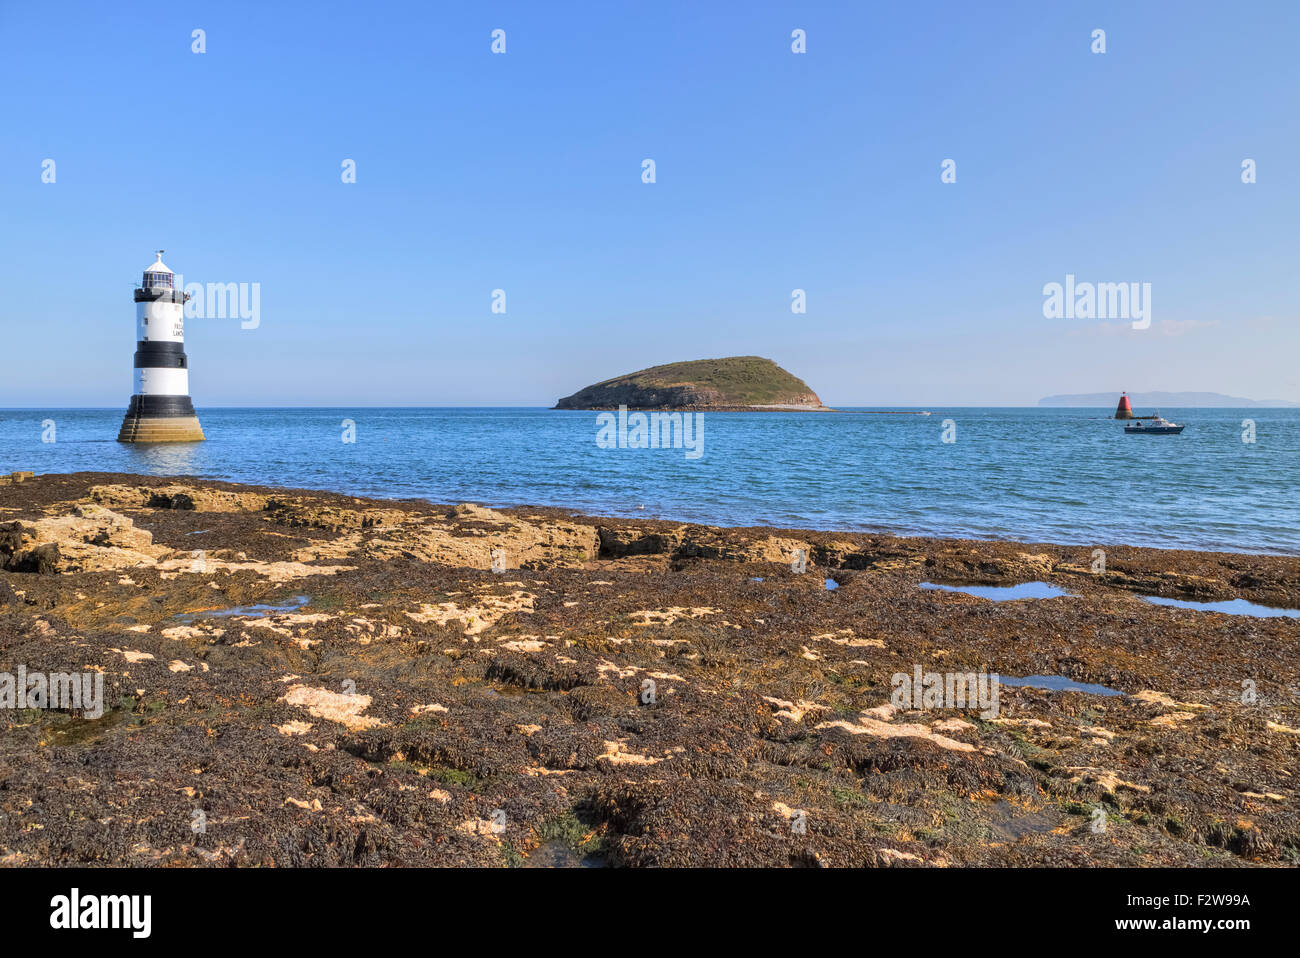 Trwyn Du Lighthouse, Puffin Island, Wales, United Kingdom Stock Photo